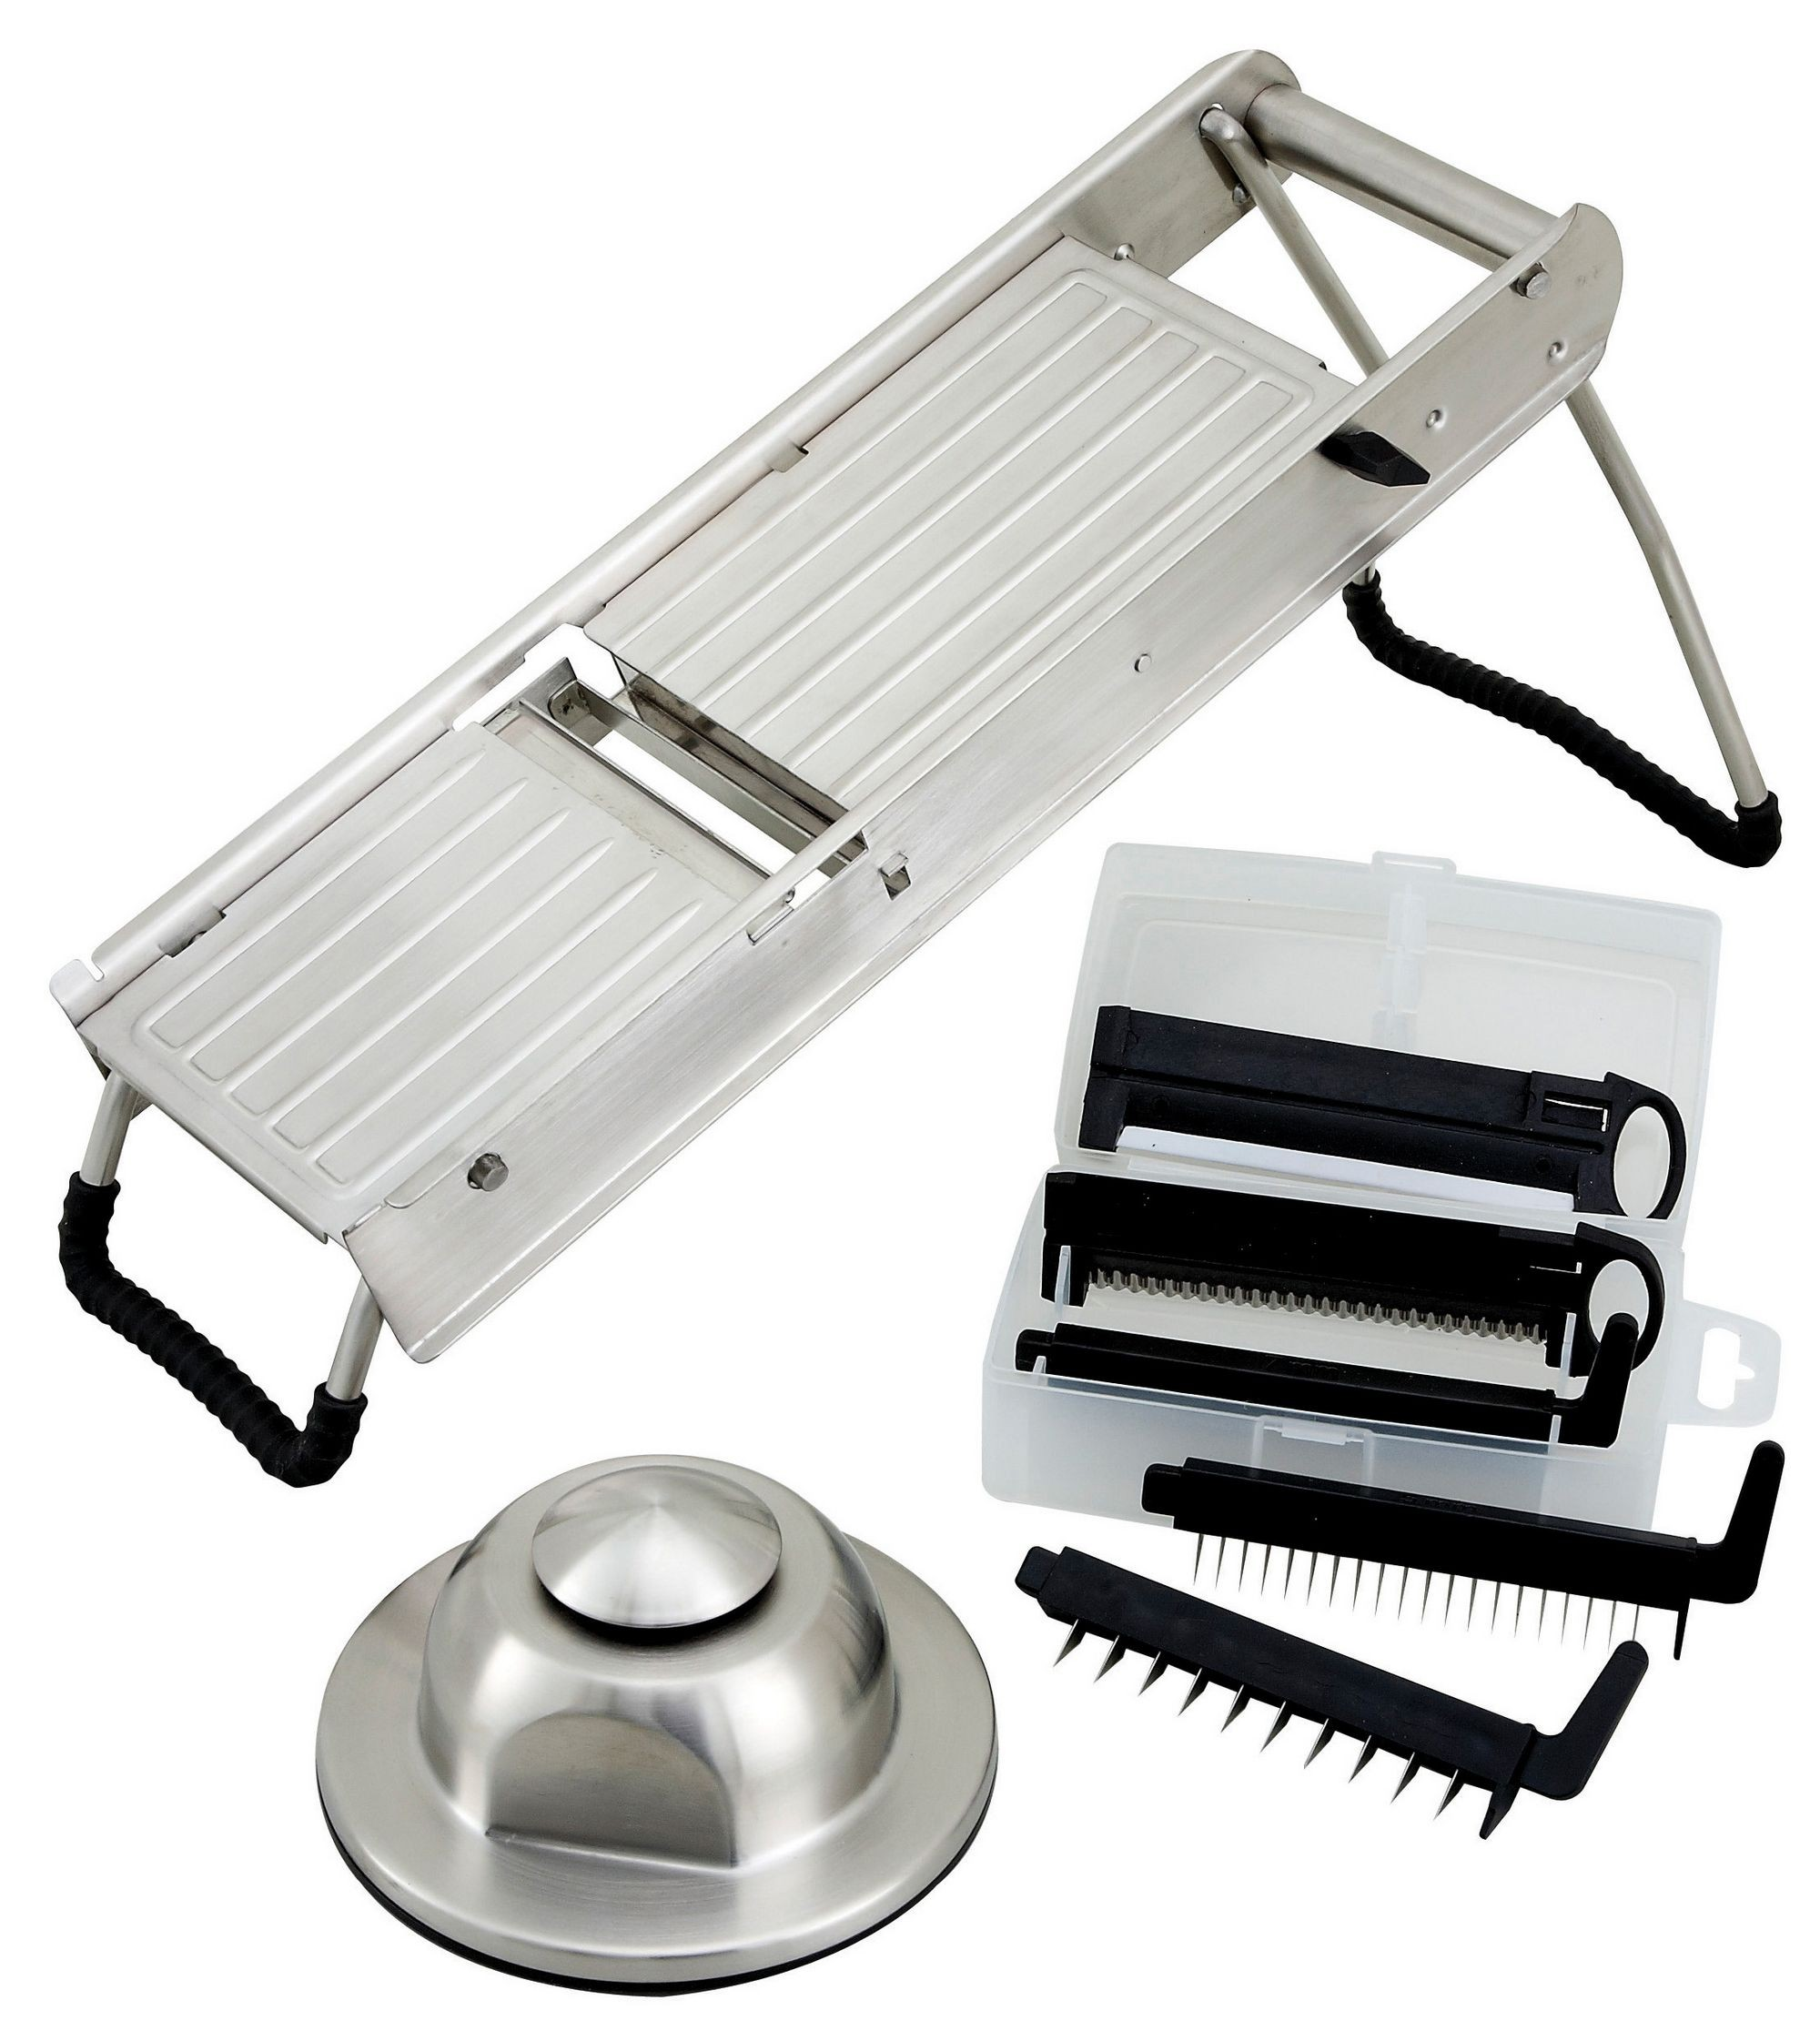 Winco MDL-15 Mandoline Slicer Set with Stainless Steel Hand Guard